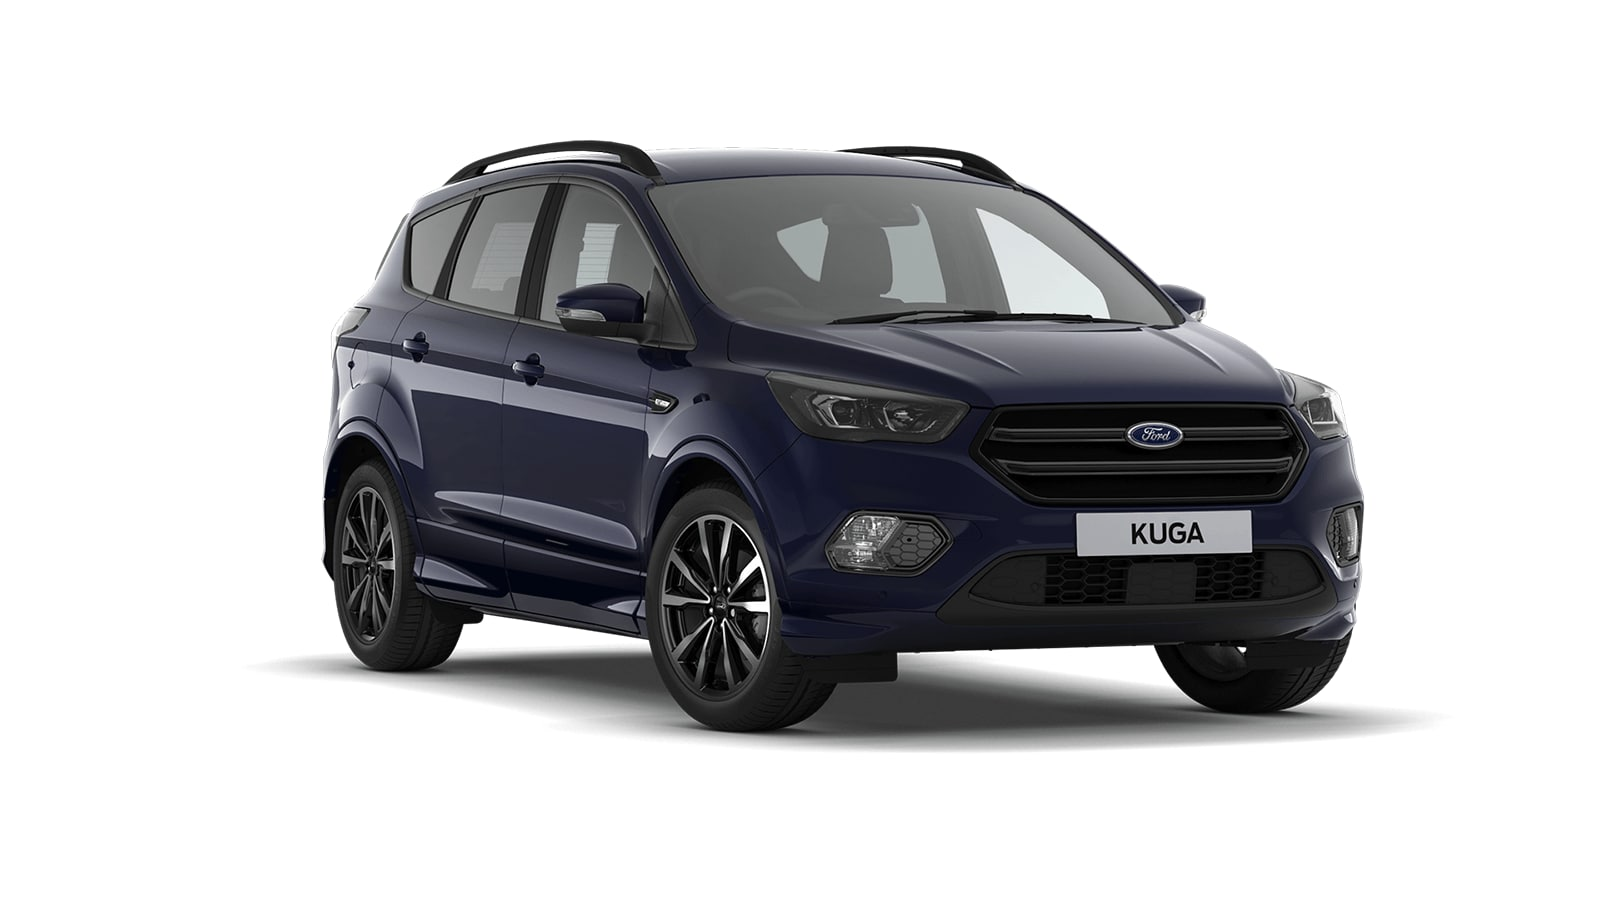 Ford Kuga ST-Line 1.5L EcoBoost 150PS at Browne & Day